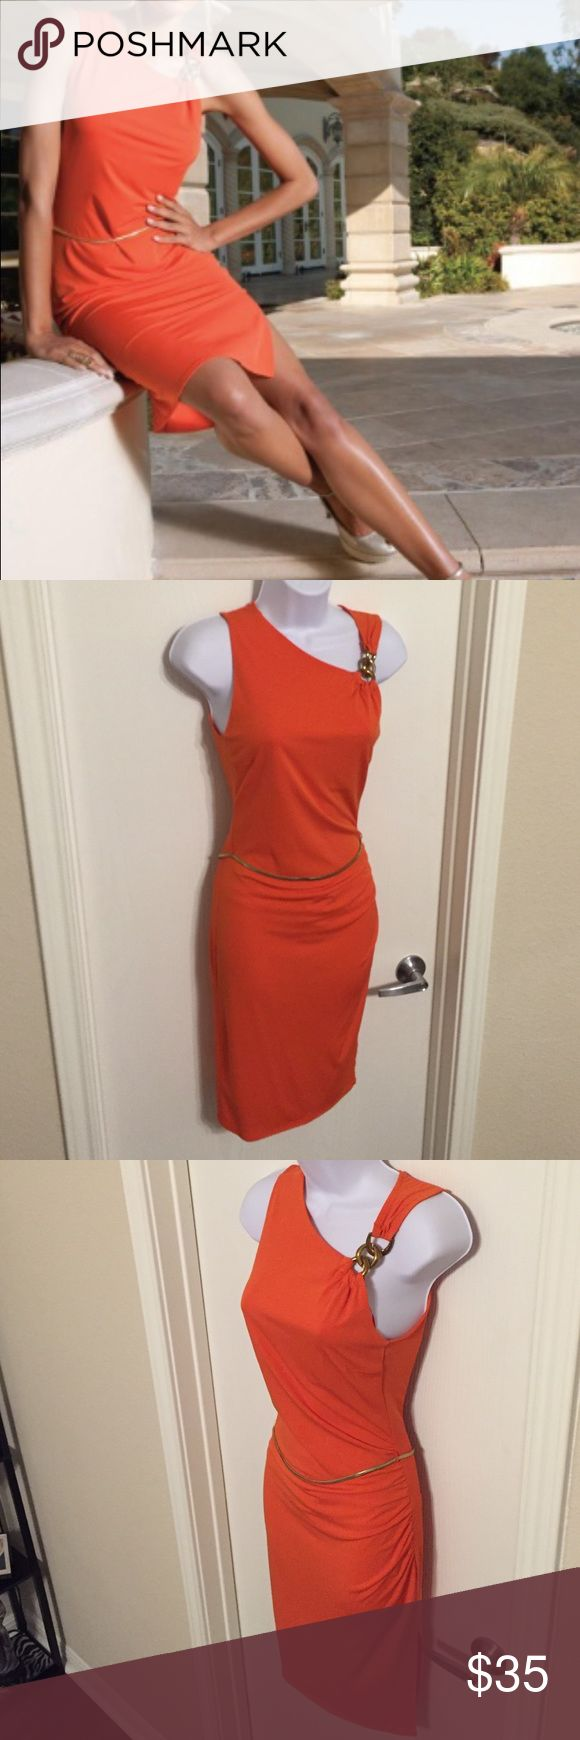 J Lo orange dress Worn once to a wedding. Size XS but fits like a S/M. You simply can't go unnoticed in this sexy number. Jennifer Lopez Dresses